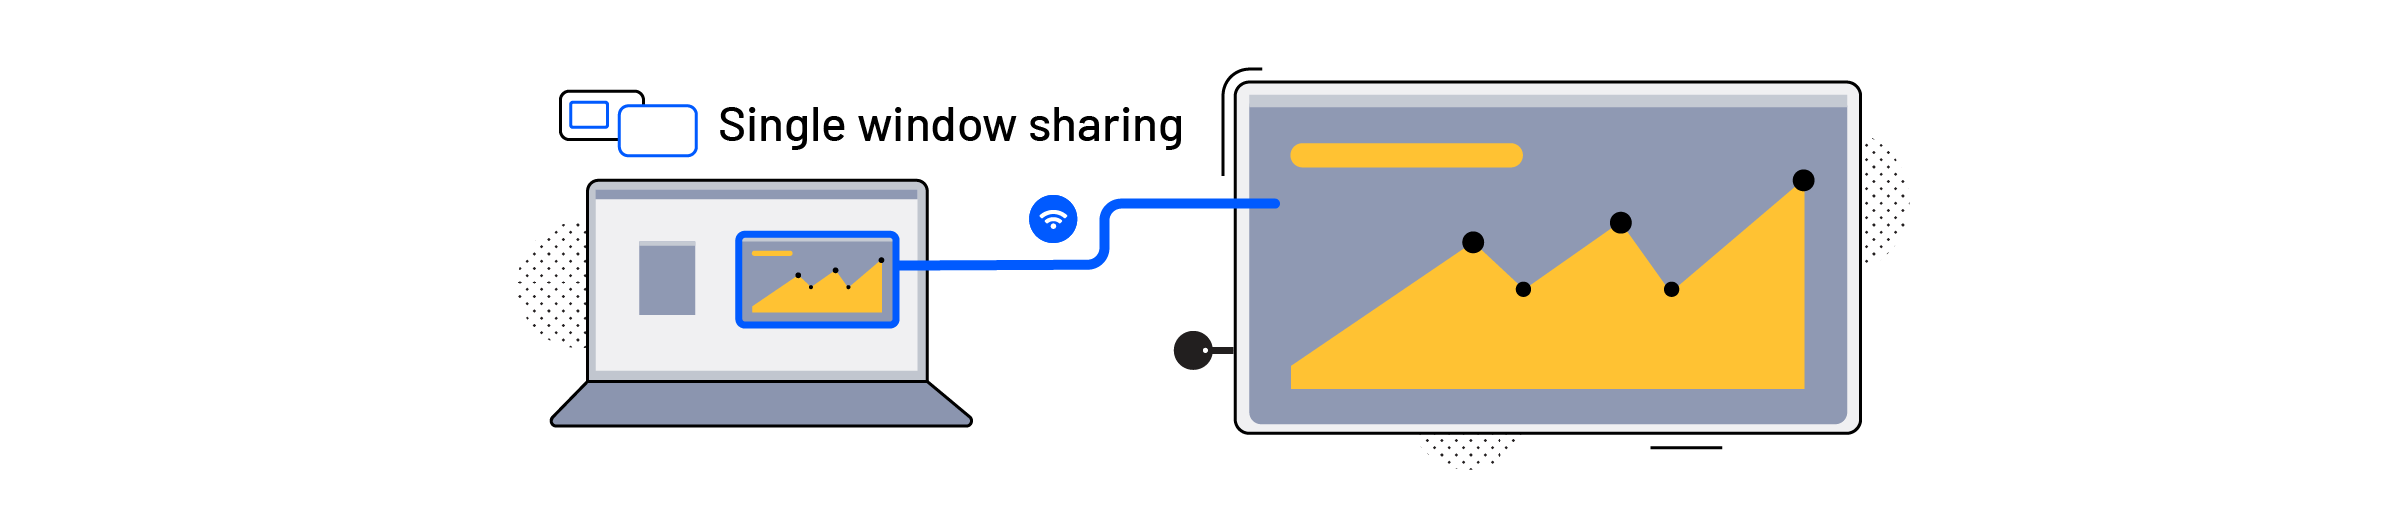 A laptop using the single window sharing feature on a screen connected to an Airtame device for screen sharing